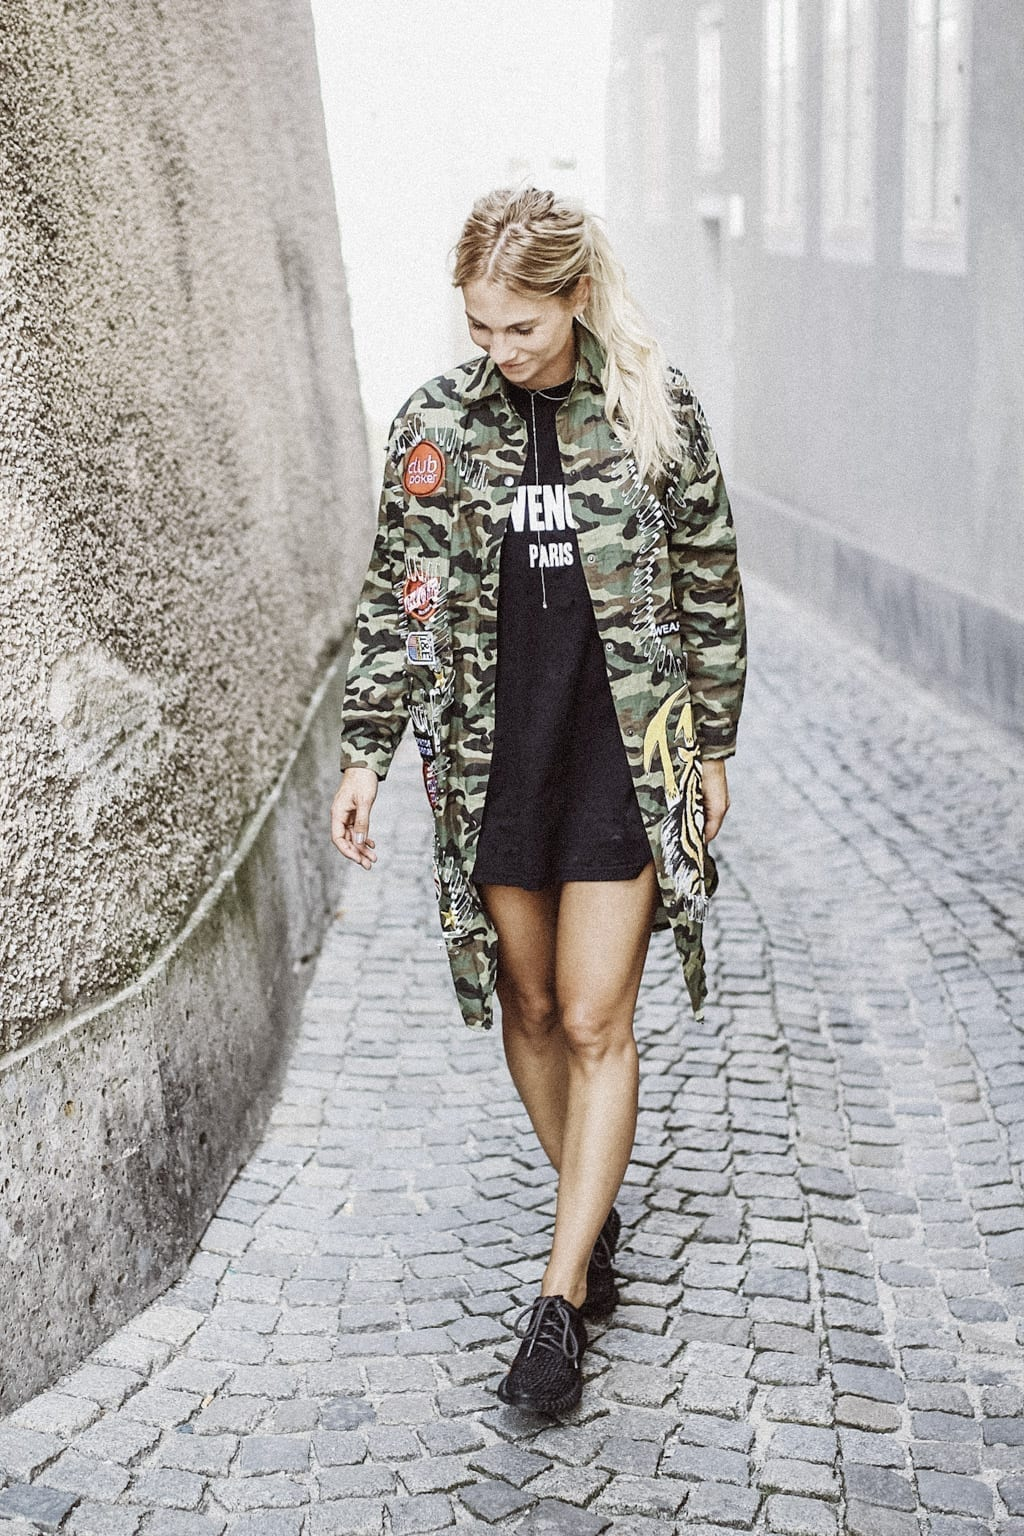 CK-1606_salzburg-fashion-street-style-look-magazine-karin-kaswurm-electric-love-2016-festival-camouflage-military-jacket-8941